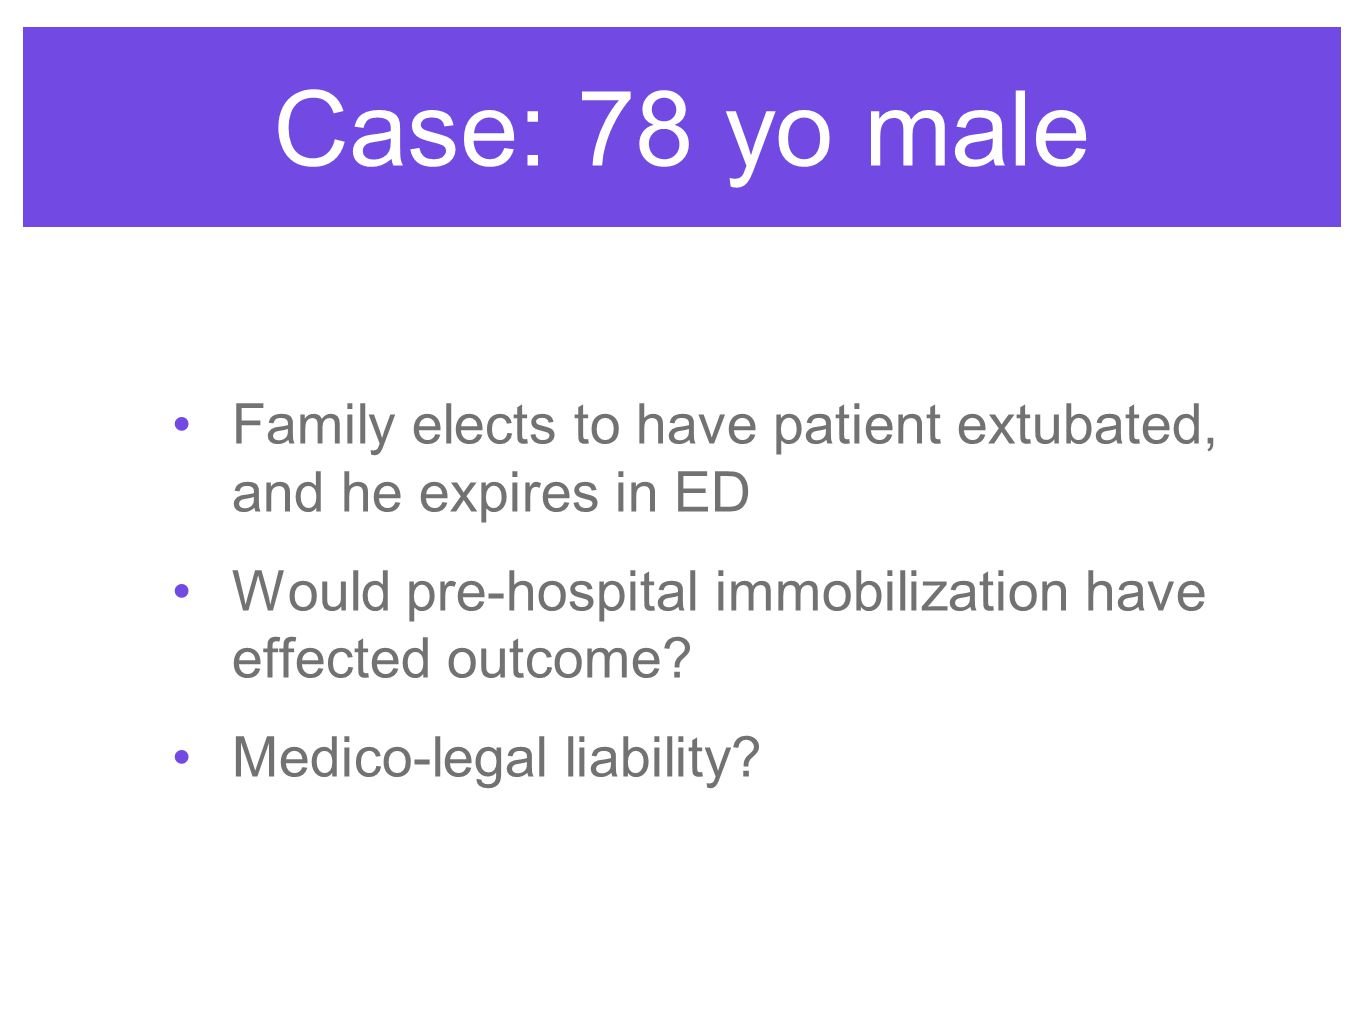 Family elects to have patient extubated, and he expires in ED Would pre-hospital immobilization have effected outcome? Medico-legal liability? Case: 7